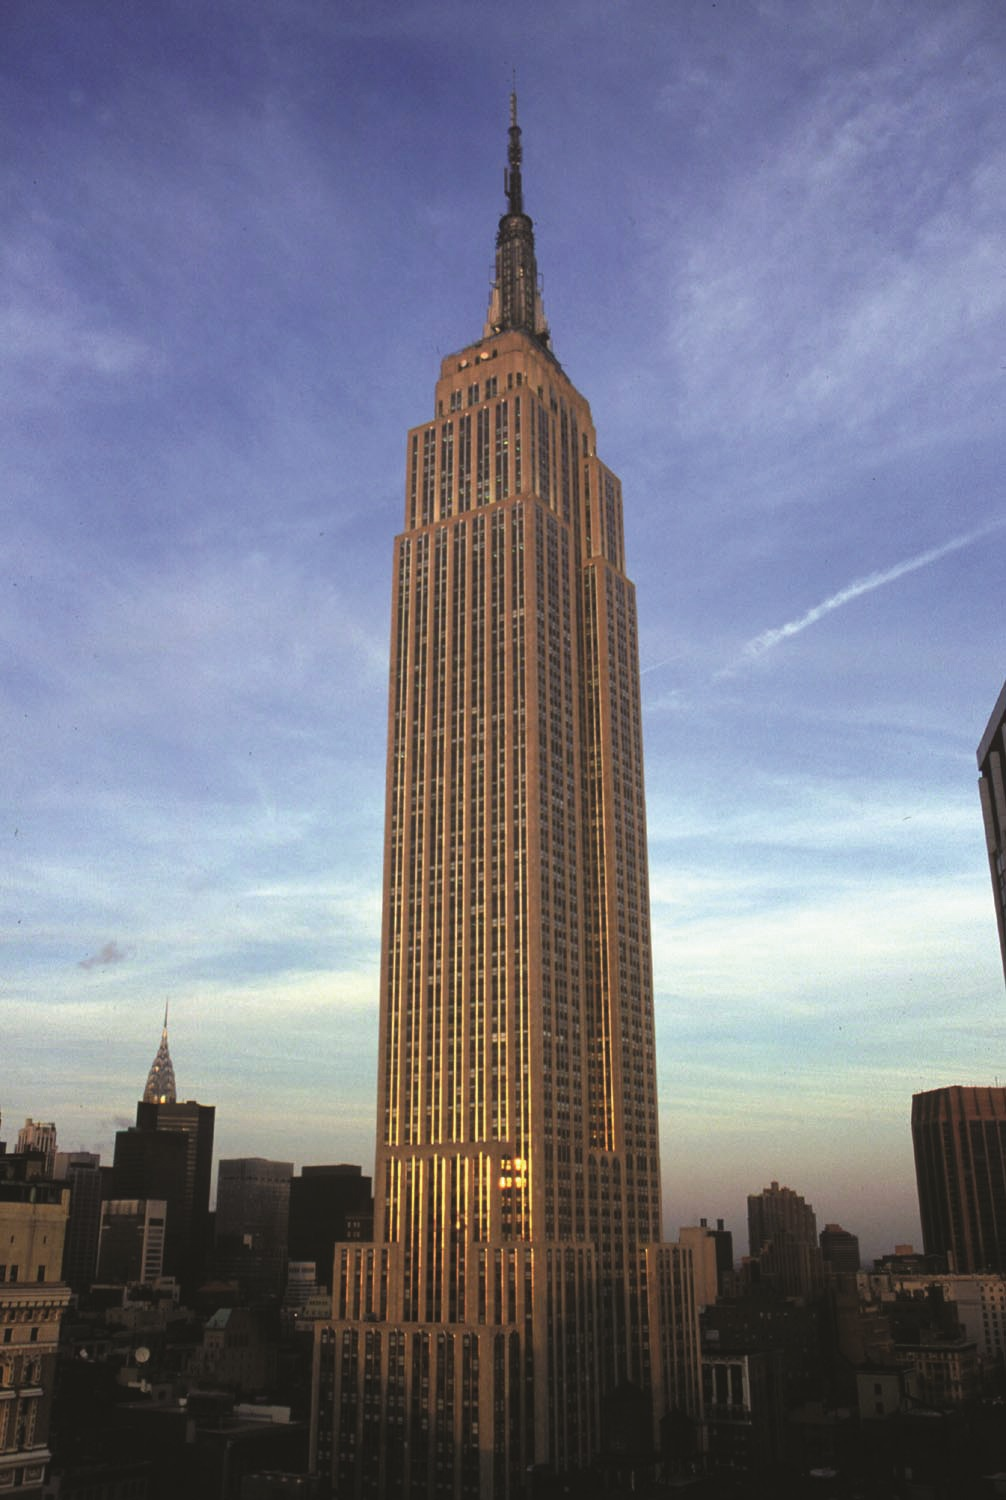 New York Jets - Empire State Building